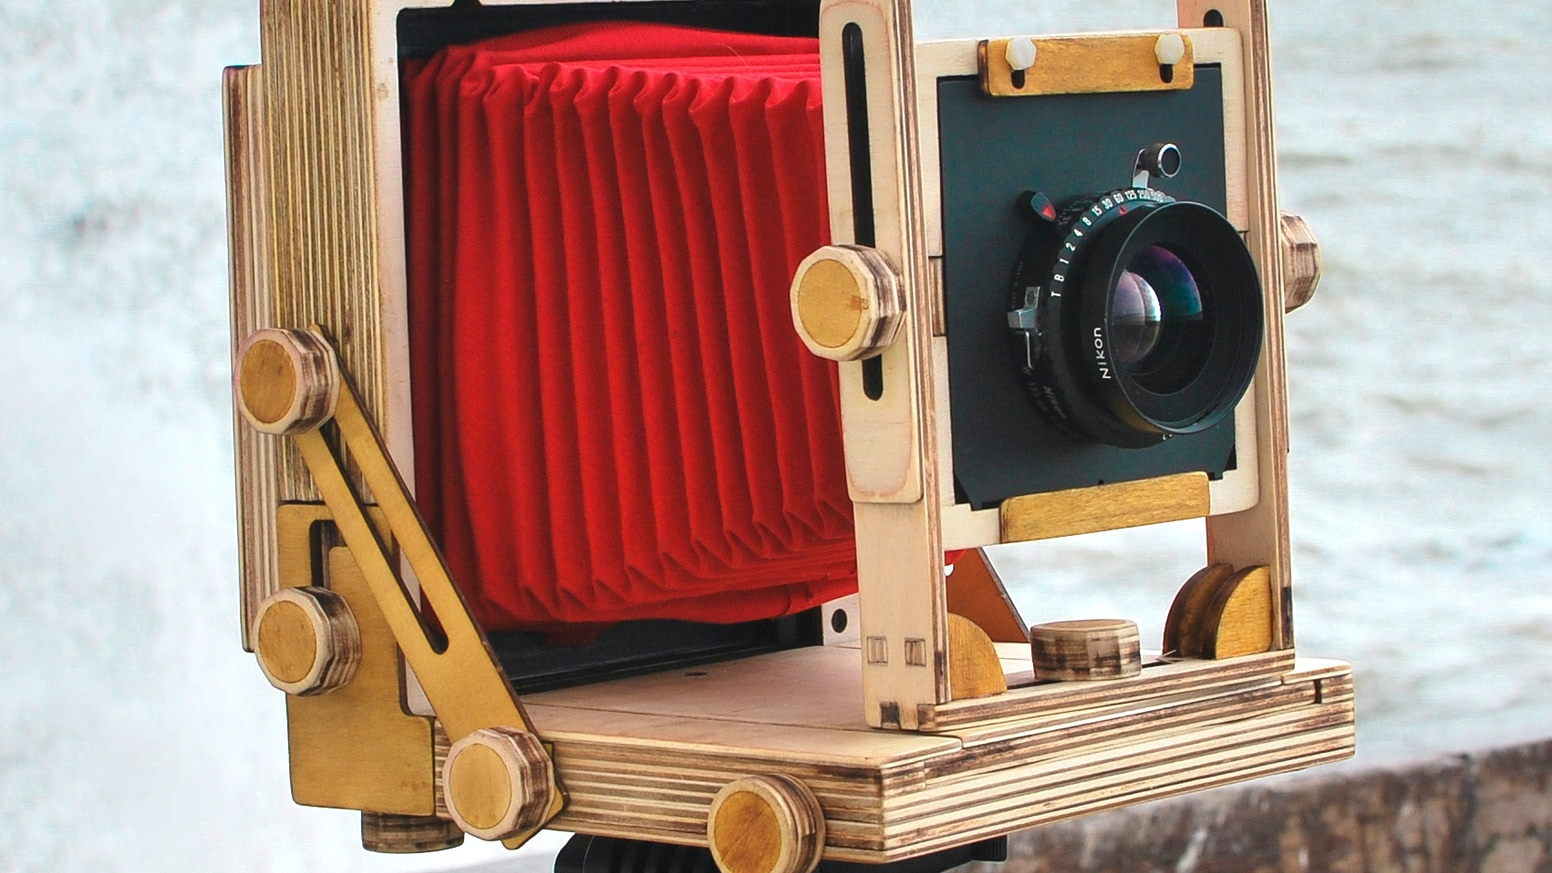 The Intrepid Camera is a high quality and affordable 4x5 field camera, it's light weight, packed with features and capable of creating breath taking images.